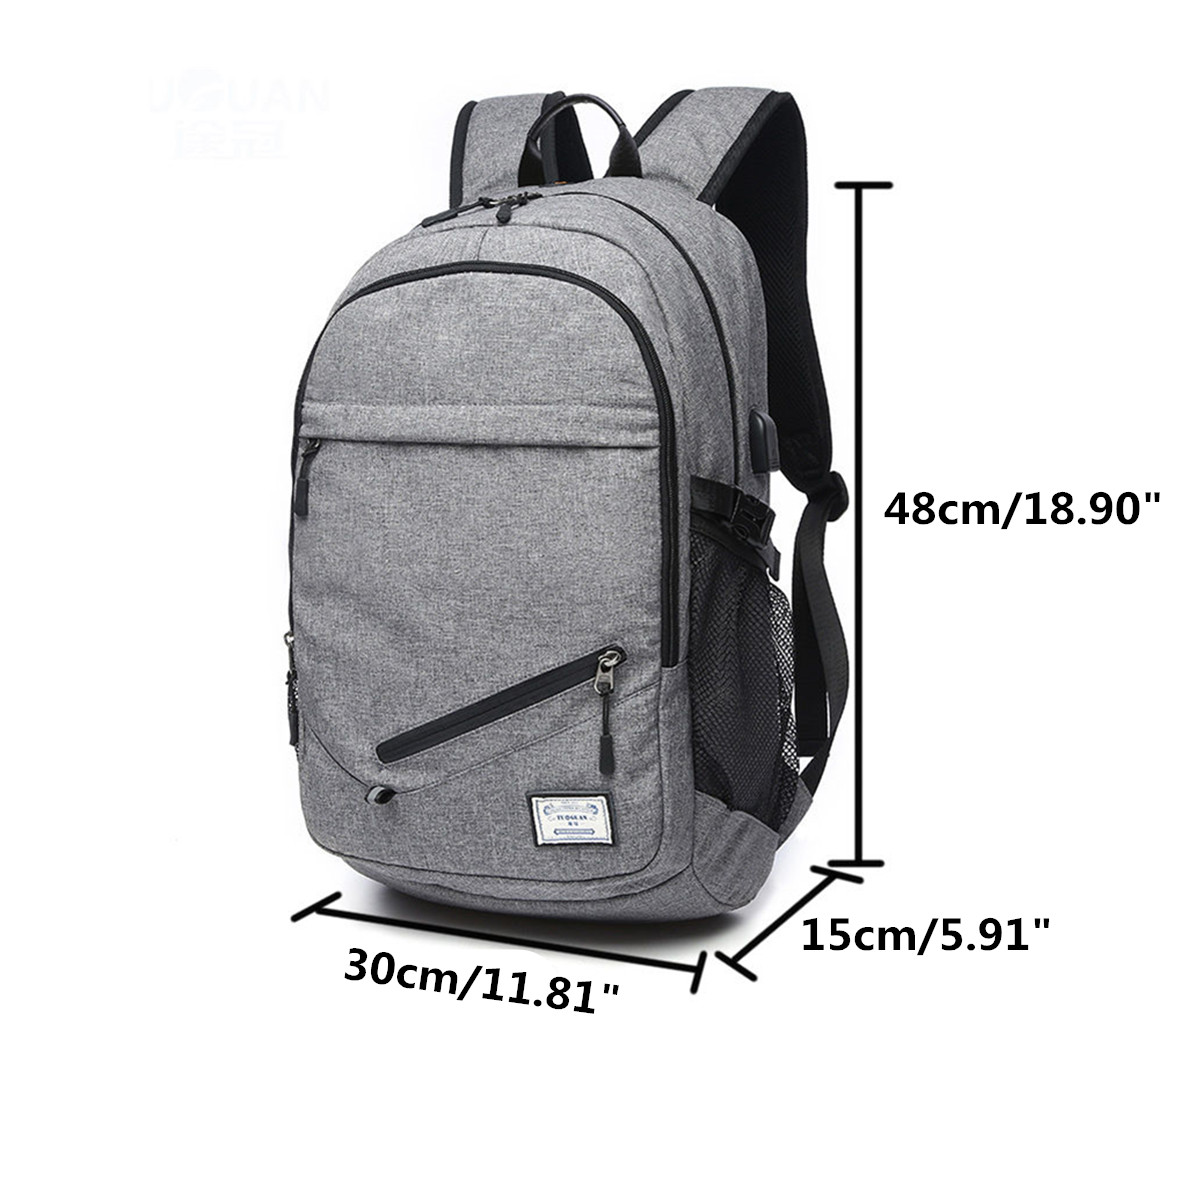 2019-Men-039-s-Basketball-Net-Laptop-Backpack-Bag-with-USB-Charging-Sport-Black-Grey